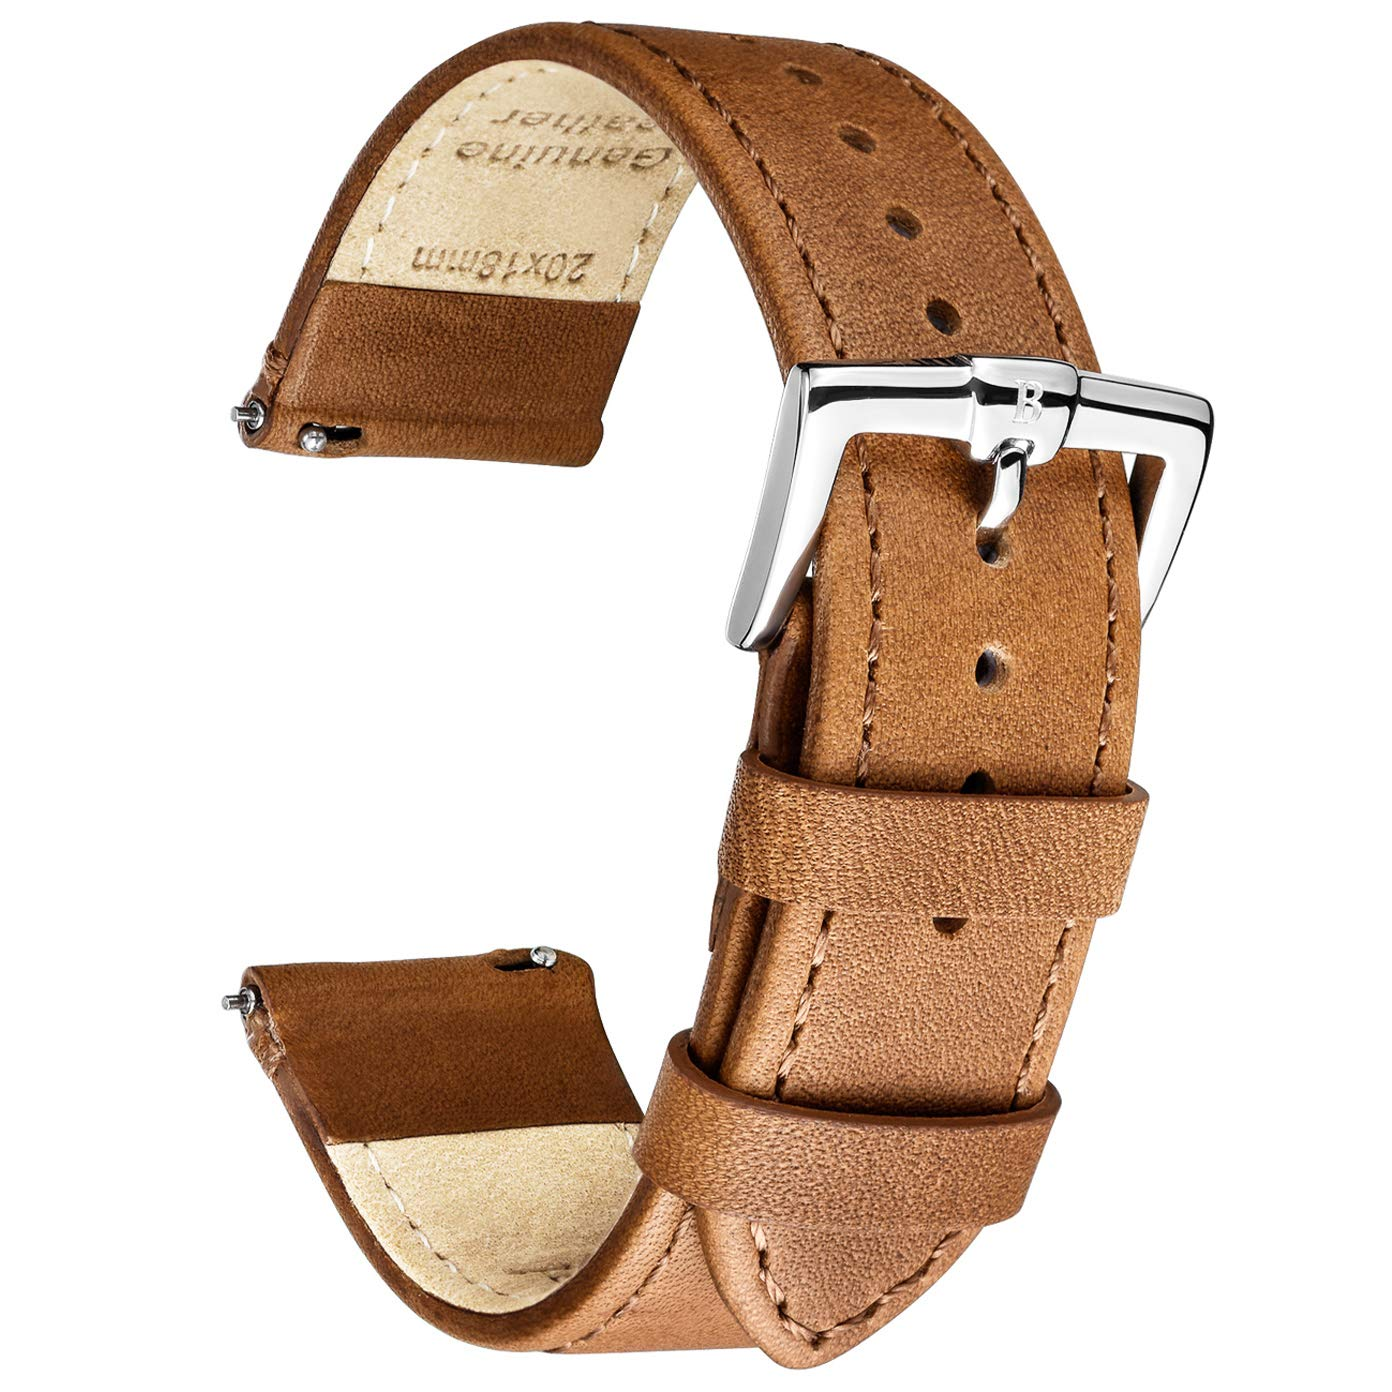 B&E Quick Release Watch Bands Strap Top Smooth Genuine Leather for Men & Women - Lite Vintage Style Wristbands for Traditional & Smart Watch - 16mm 18mm 20mm 22mm 24mm Width Available - LTBNBN20